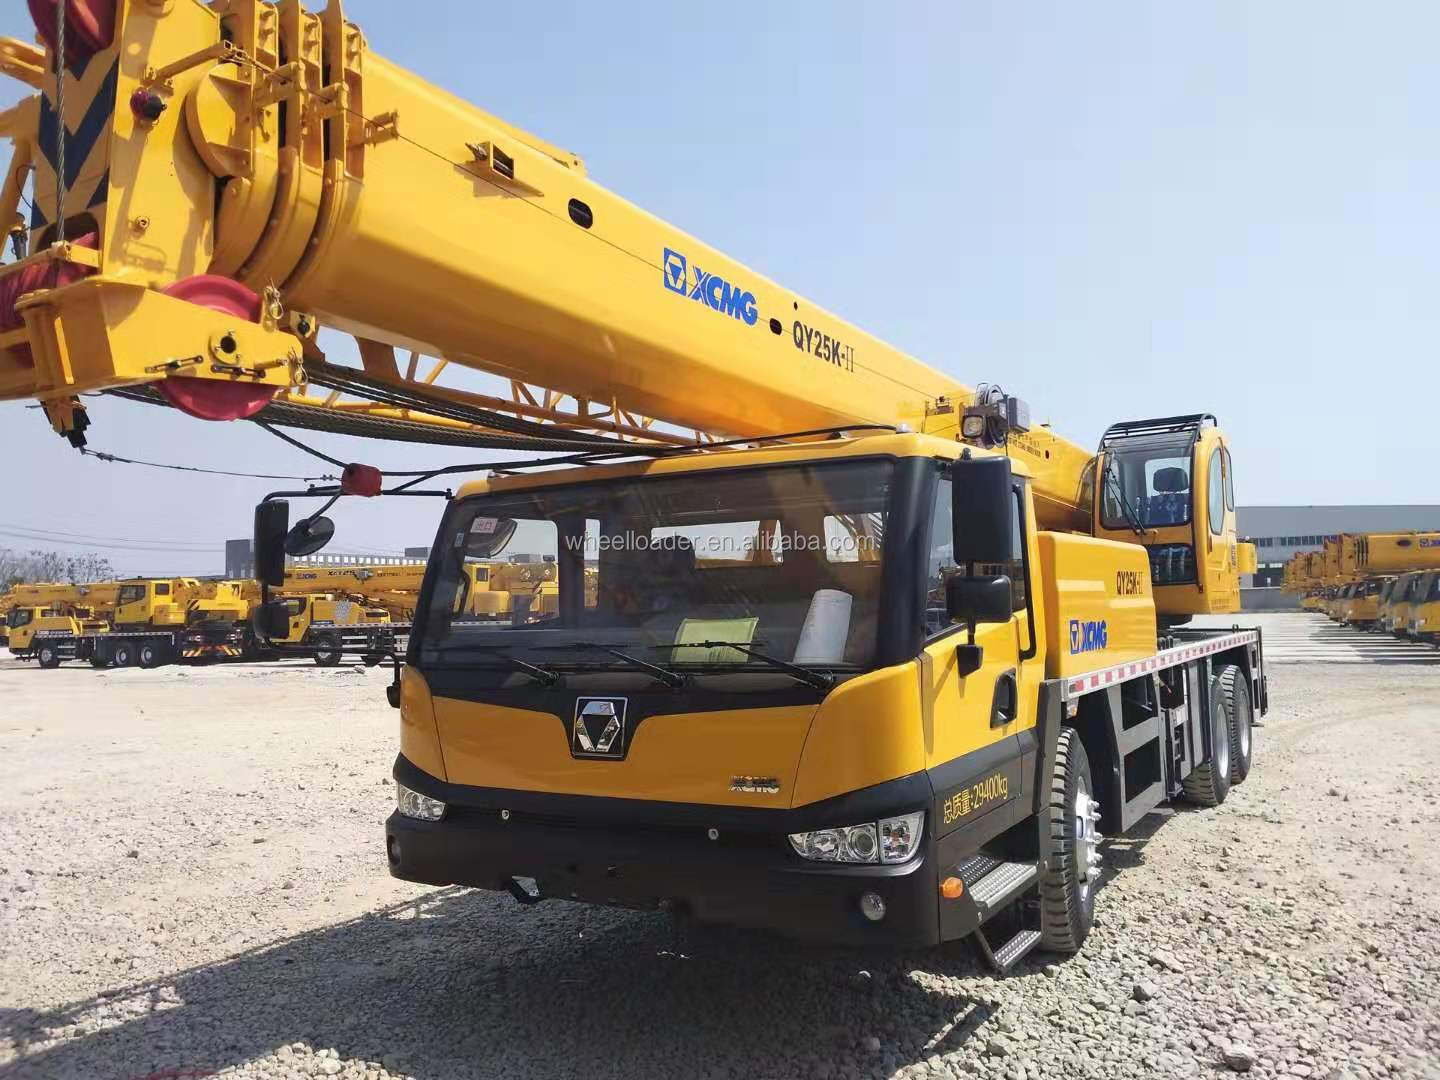 Popular China 25 Ton Hydraulic Mobile Truck Crane QY25K-2 with 4 arms